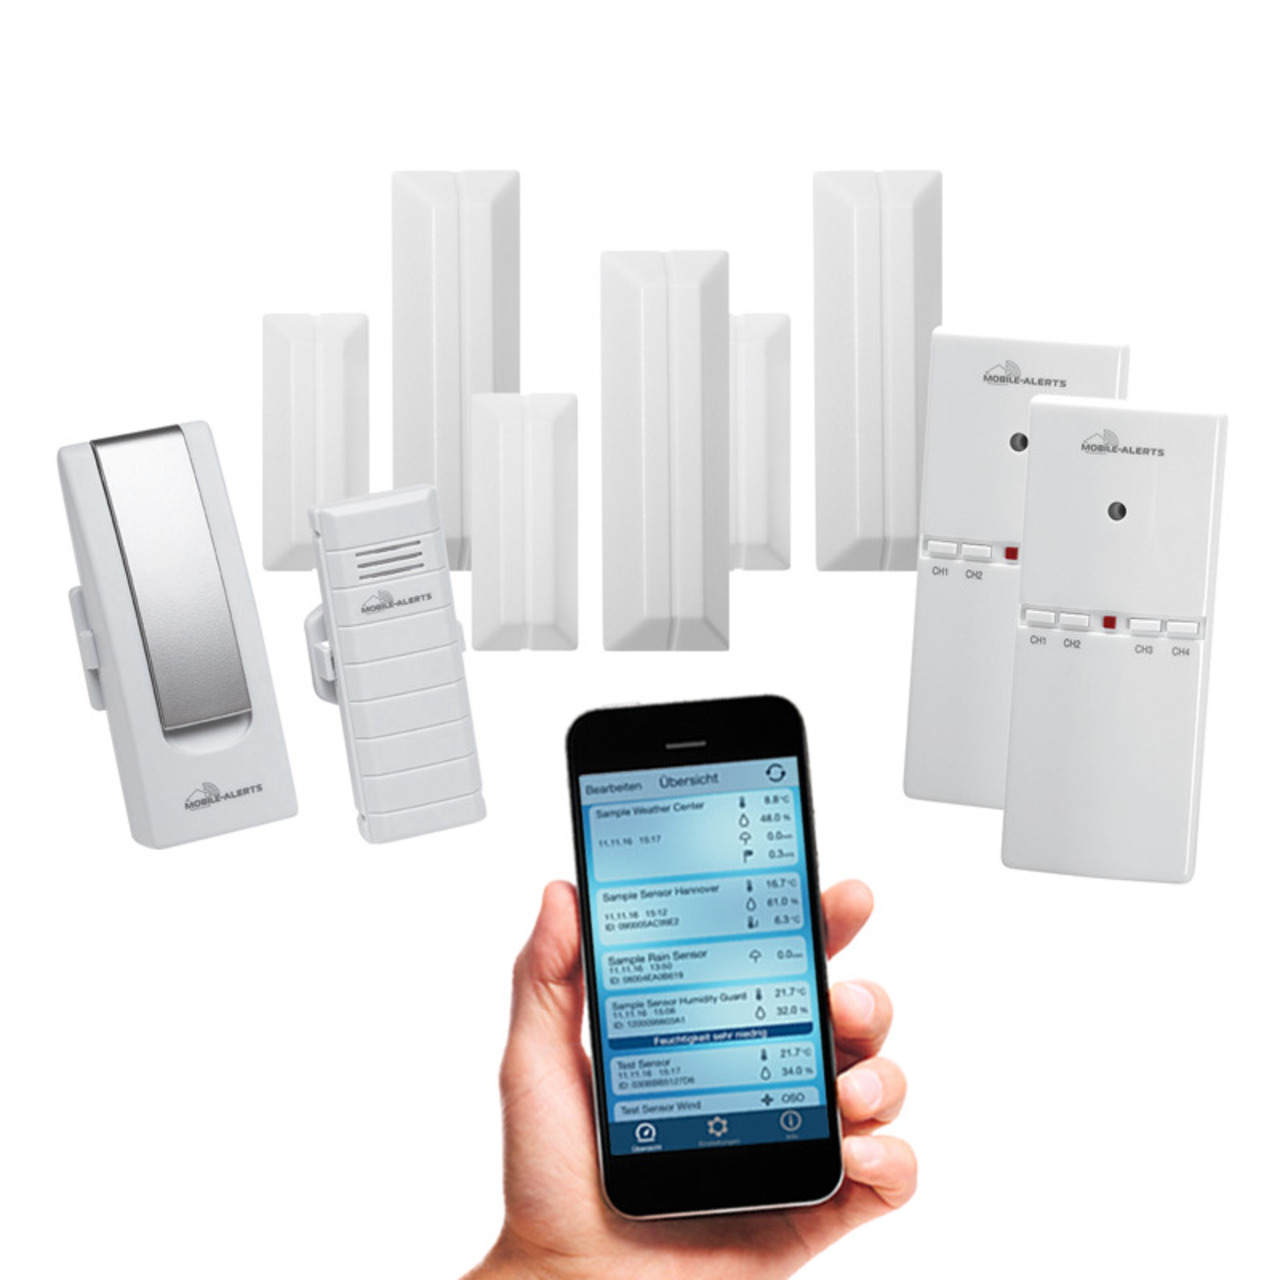 ELV Mobile Alerts Sicherheits-Set 1x Gateway- 1x Temperatursensor- 3x Fensterkontakt- 2x Alarmgeber